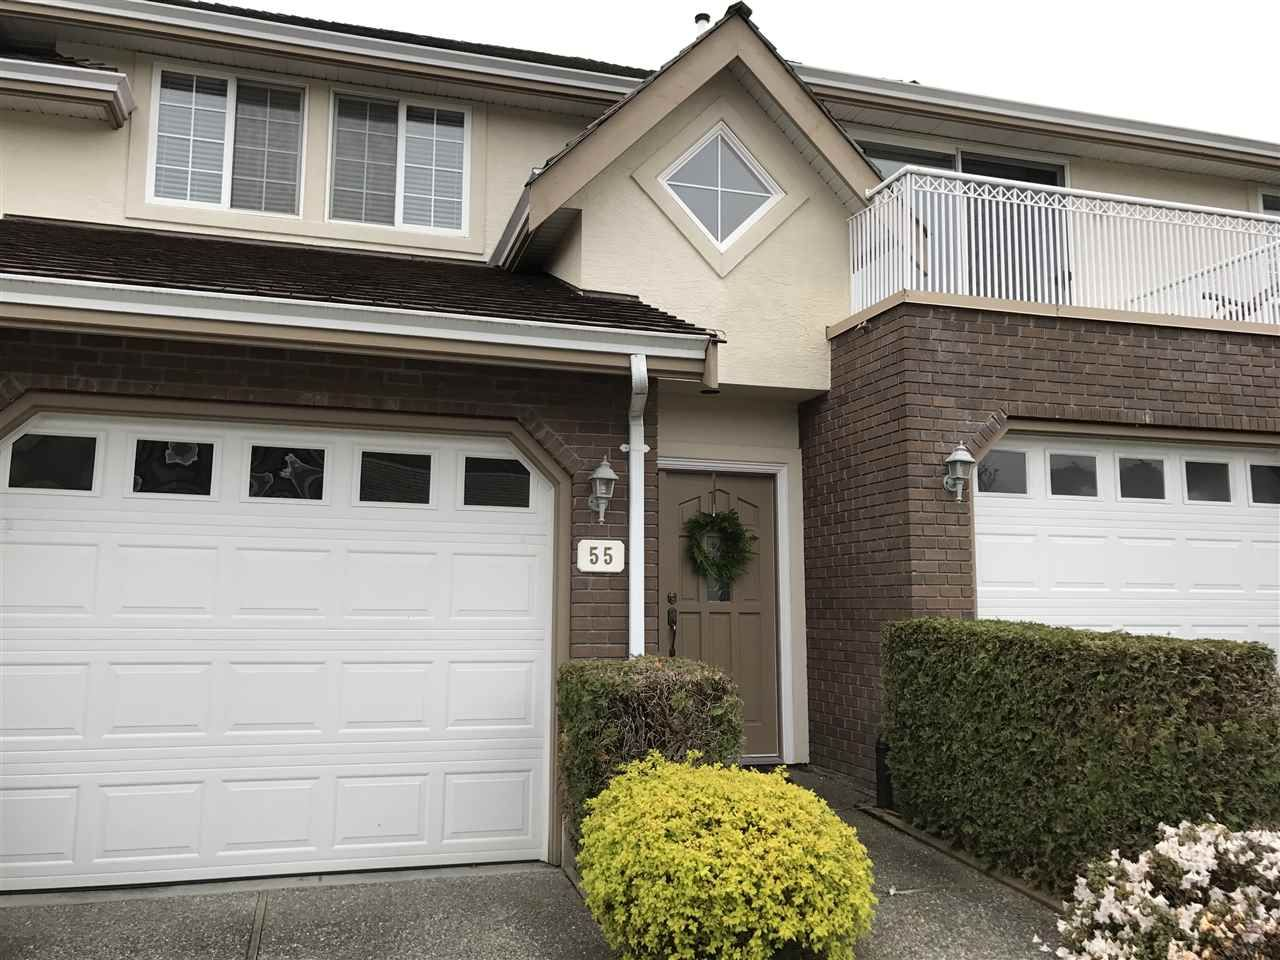 """Main Photo: 55 31450 SPUR Avenue in Abbotsford: Abbotsford West Townhouse for sale in """"Lake Point Villa"""" : MLS®# R2157955"""